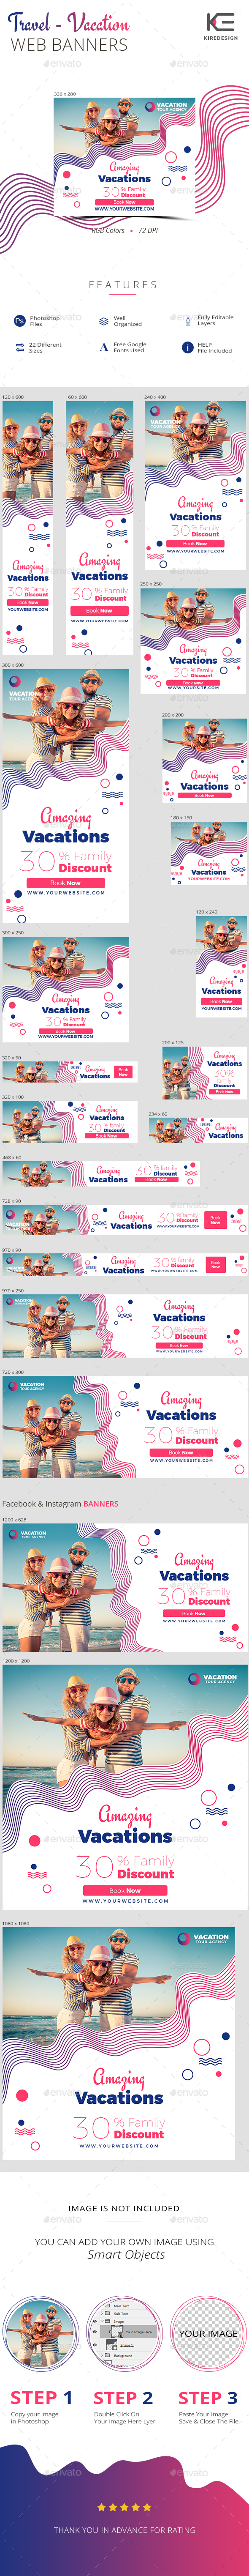 Travel - Vacation Web Banners - Banners & Ads Web Elements